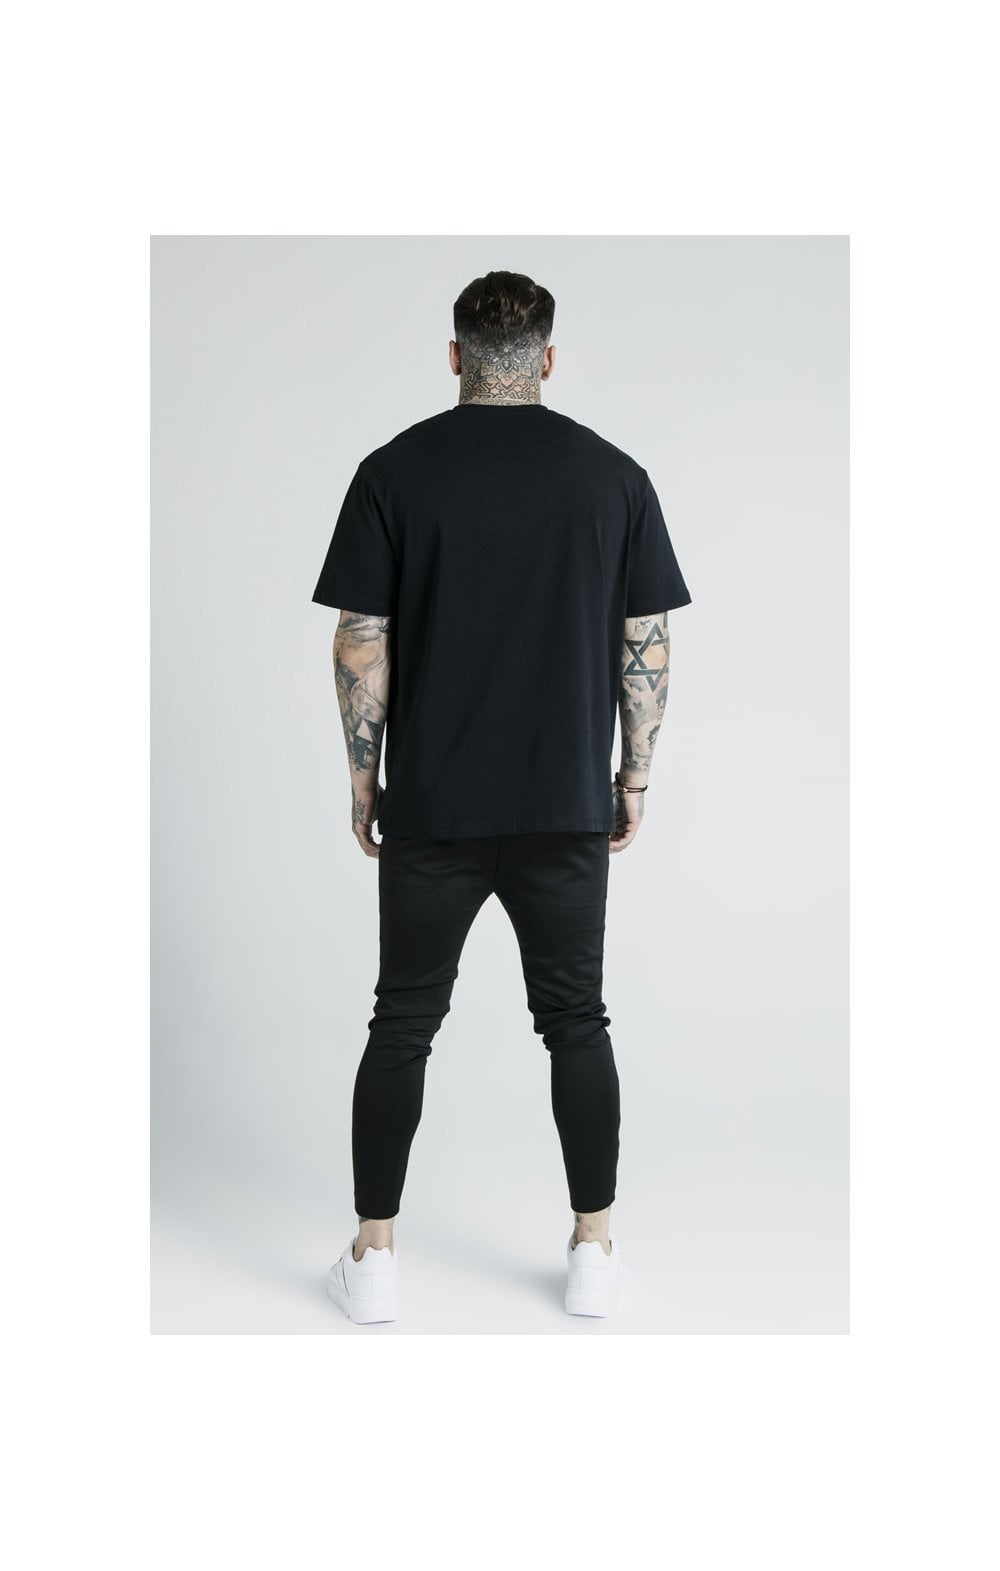 Laden Sie das Bild in den Galerie-Viewer, SikSilk X Dani Alves Luxus T-Shirt Kurzarm - Schwarz (5)